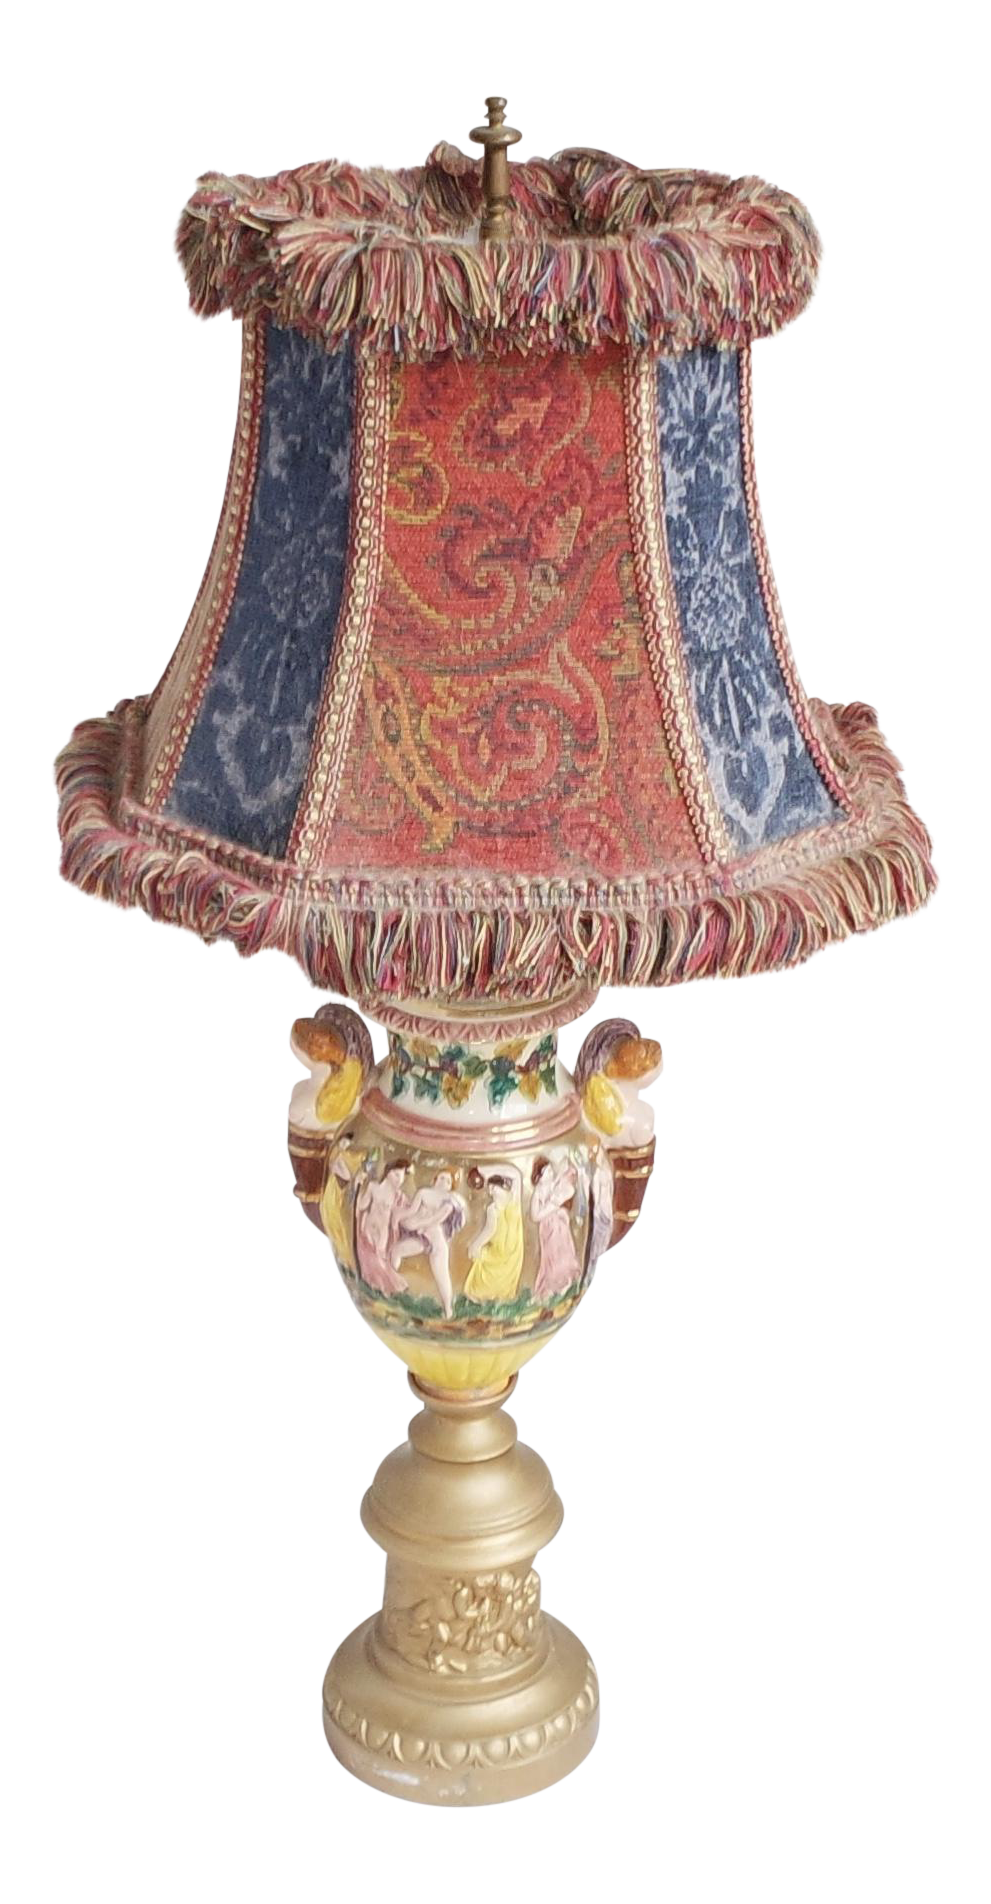 Capodimonte Porcelain Table Lamp : Vintage capodimonte porcelain table lamp chairish